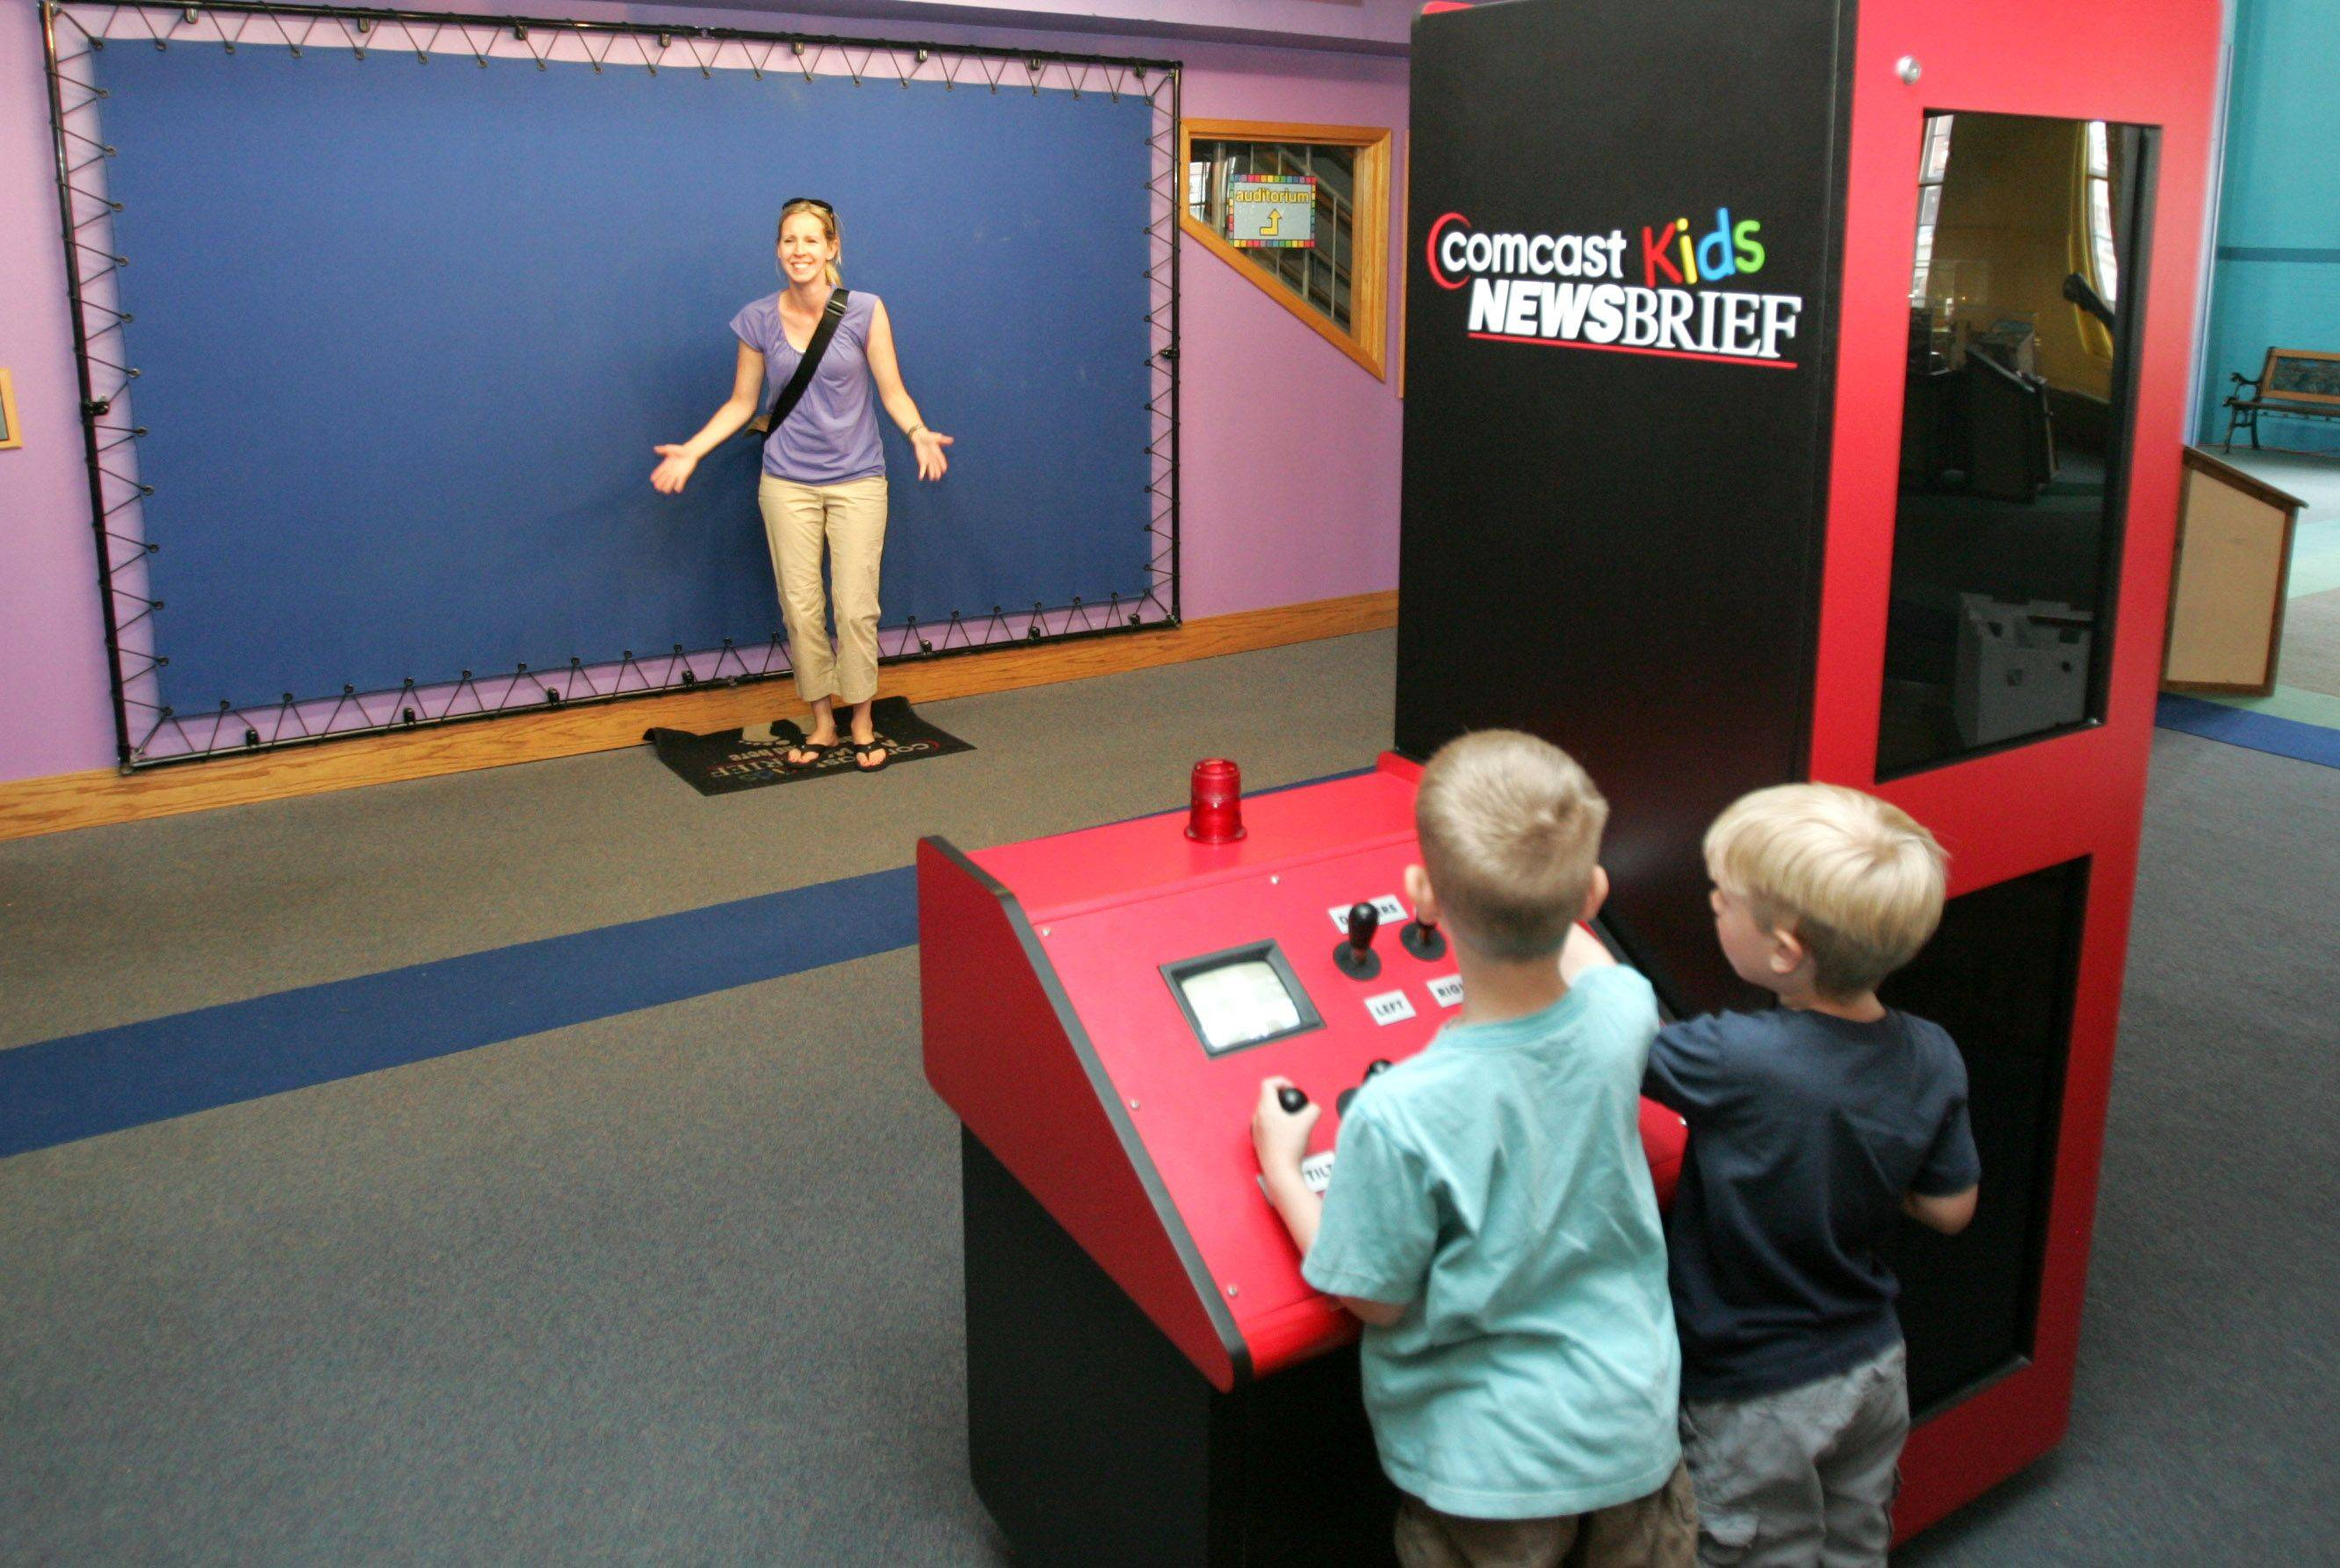 Jennifer Fuhrmann stands on camera for her son Jackson, right, and nephew Luke Petersen, of North Aurora, as they play in a broadcast news exhibit at SciTech Hands-on Museum in Aurora.